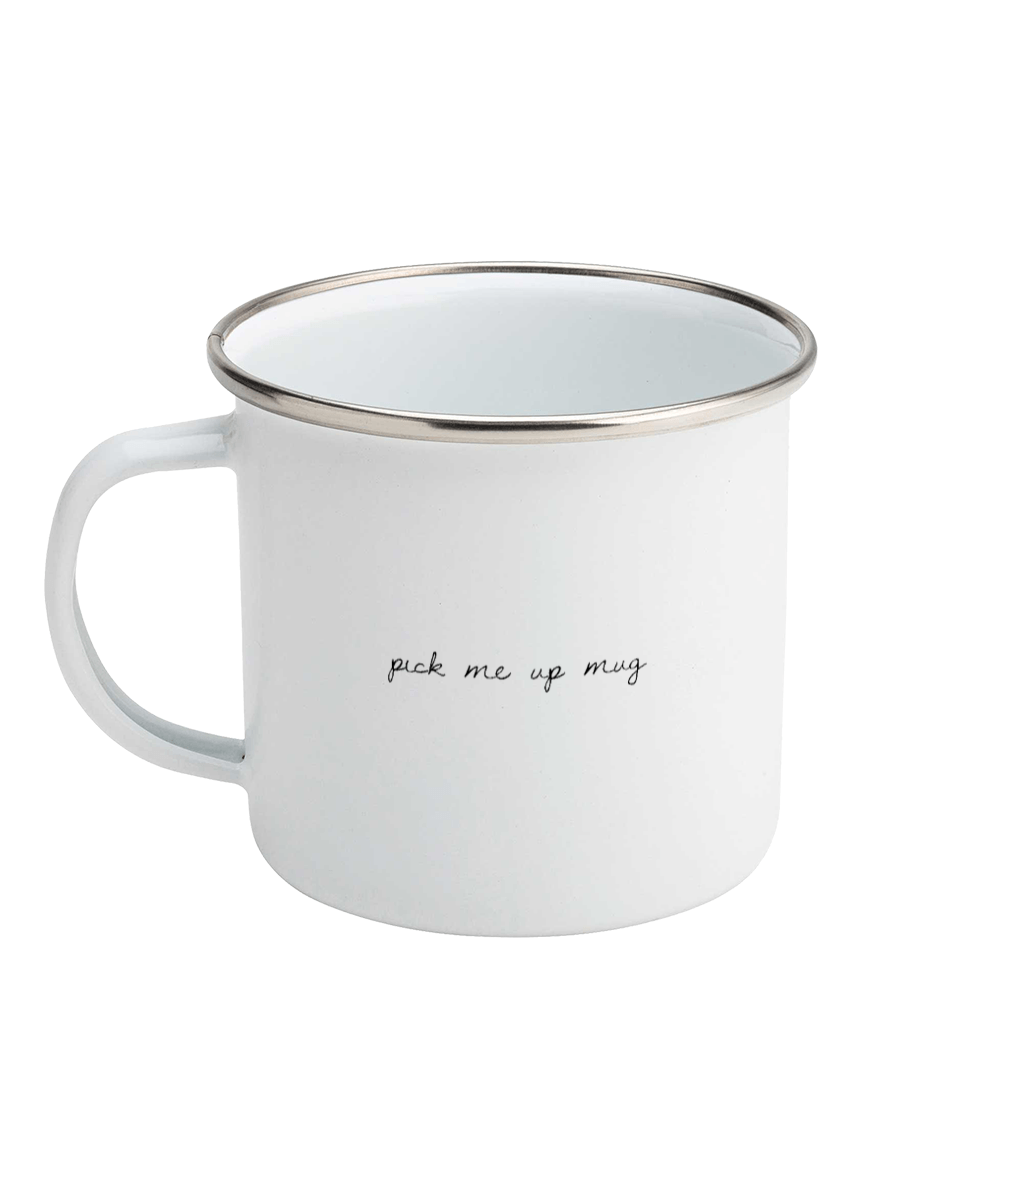 Pick Me Up Mug Enamel